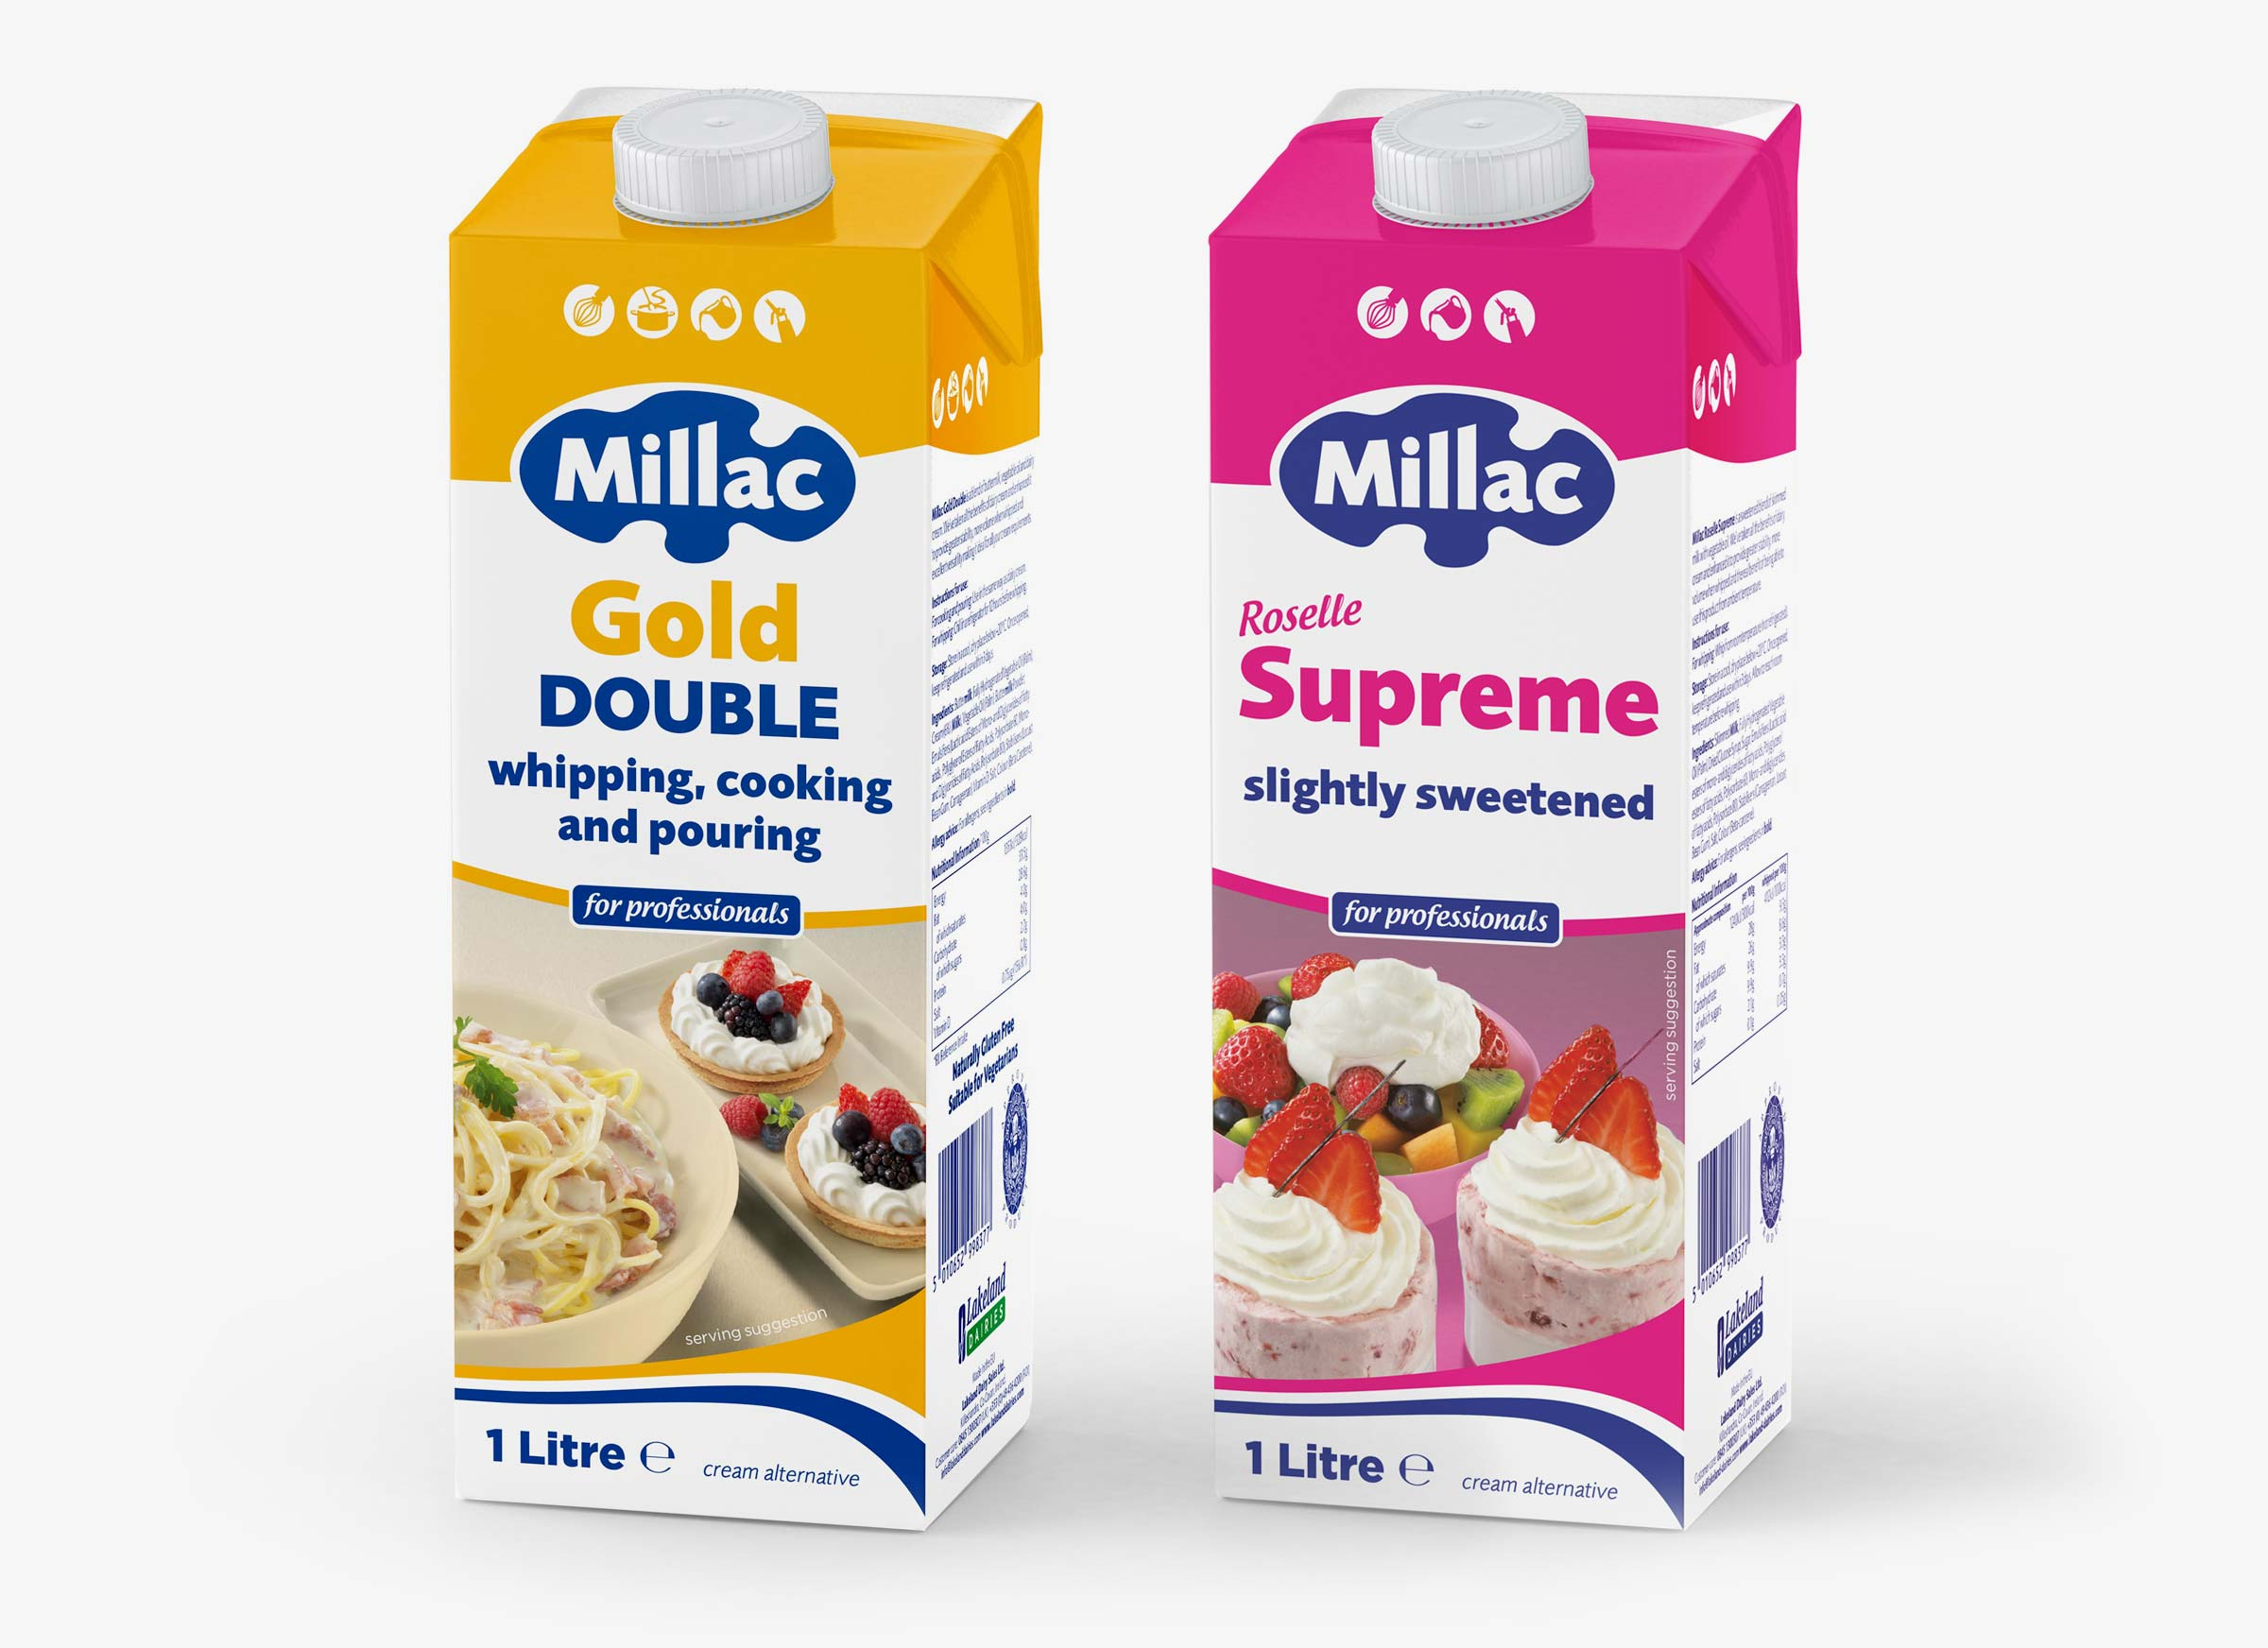 Millac Teatra Edge packaging